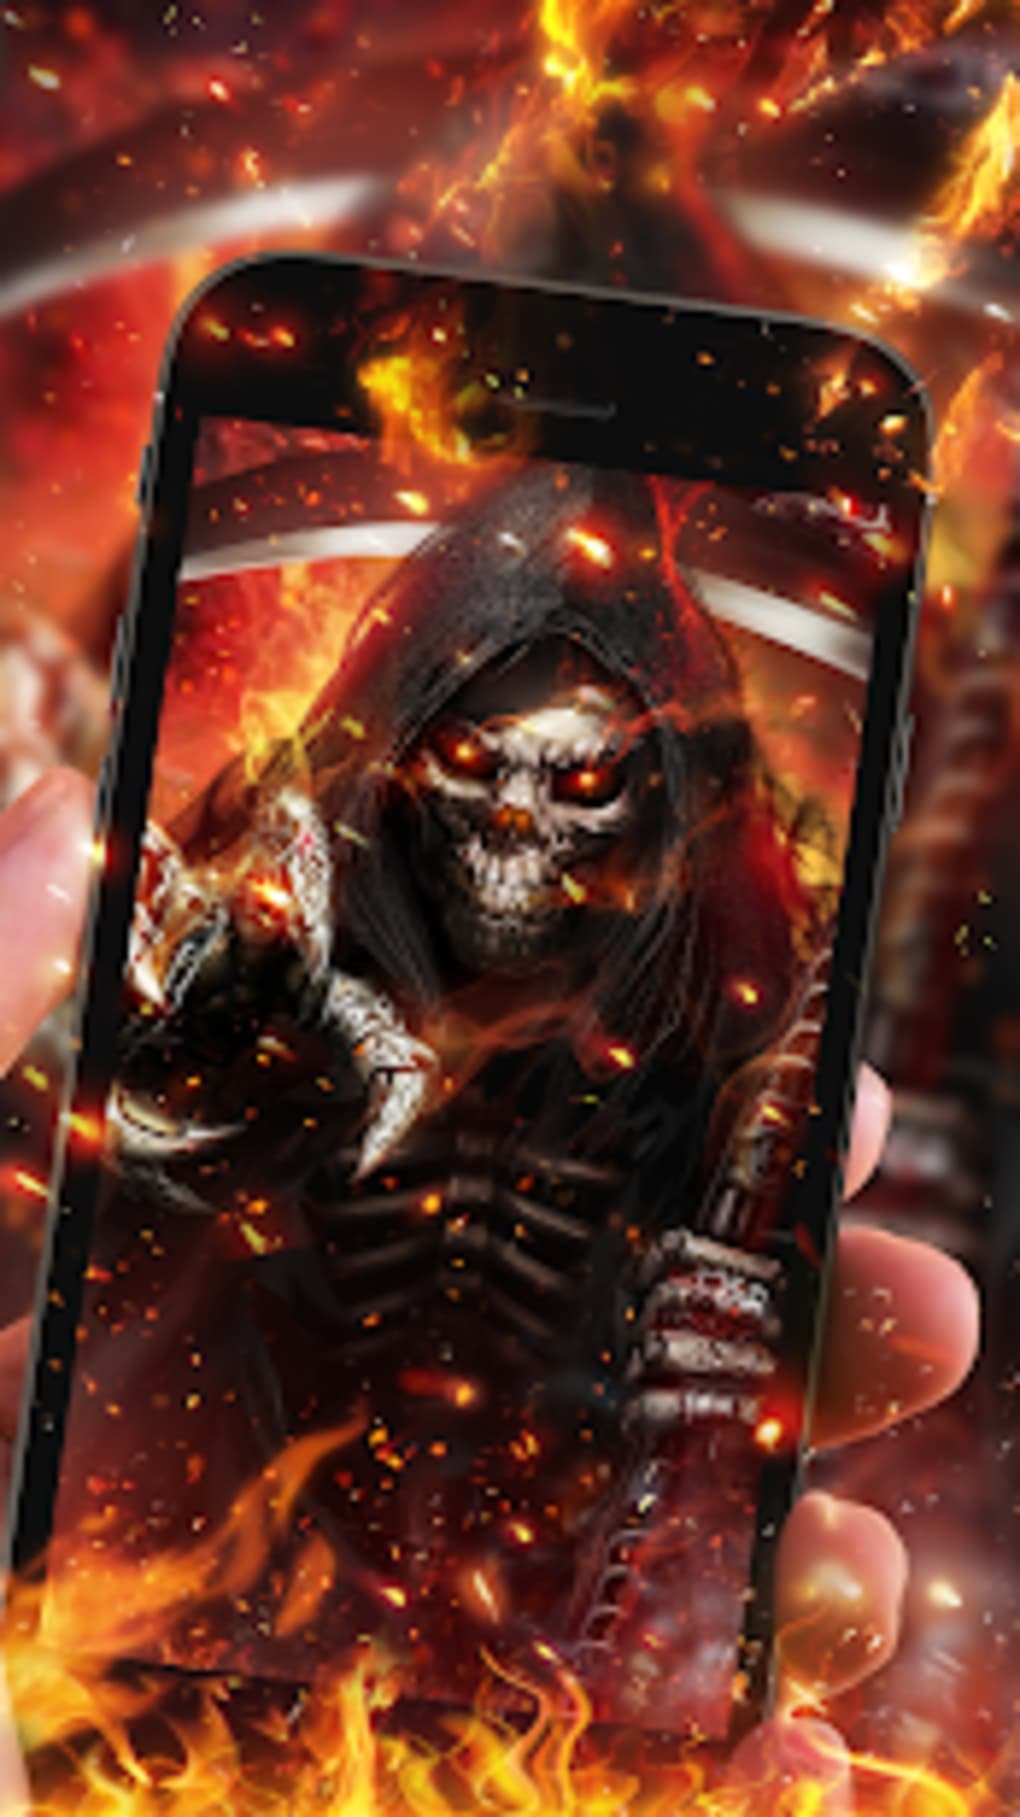 Flaming Grim Reaper Live Wallpaper Apk For Android Download